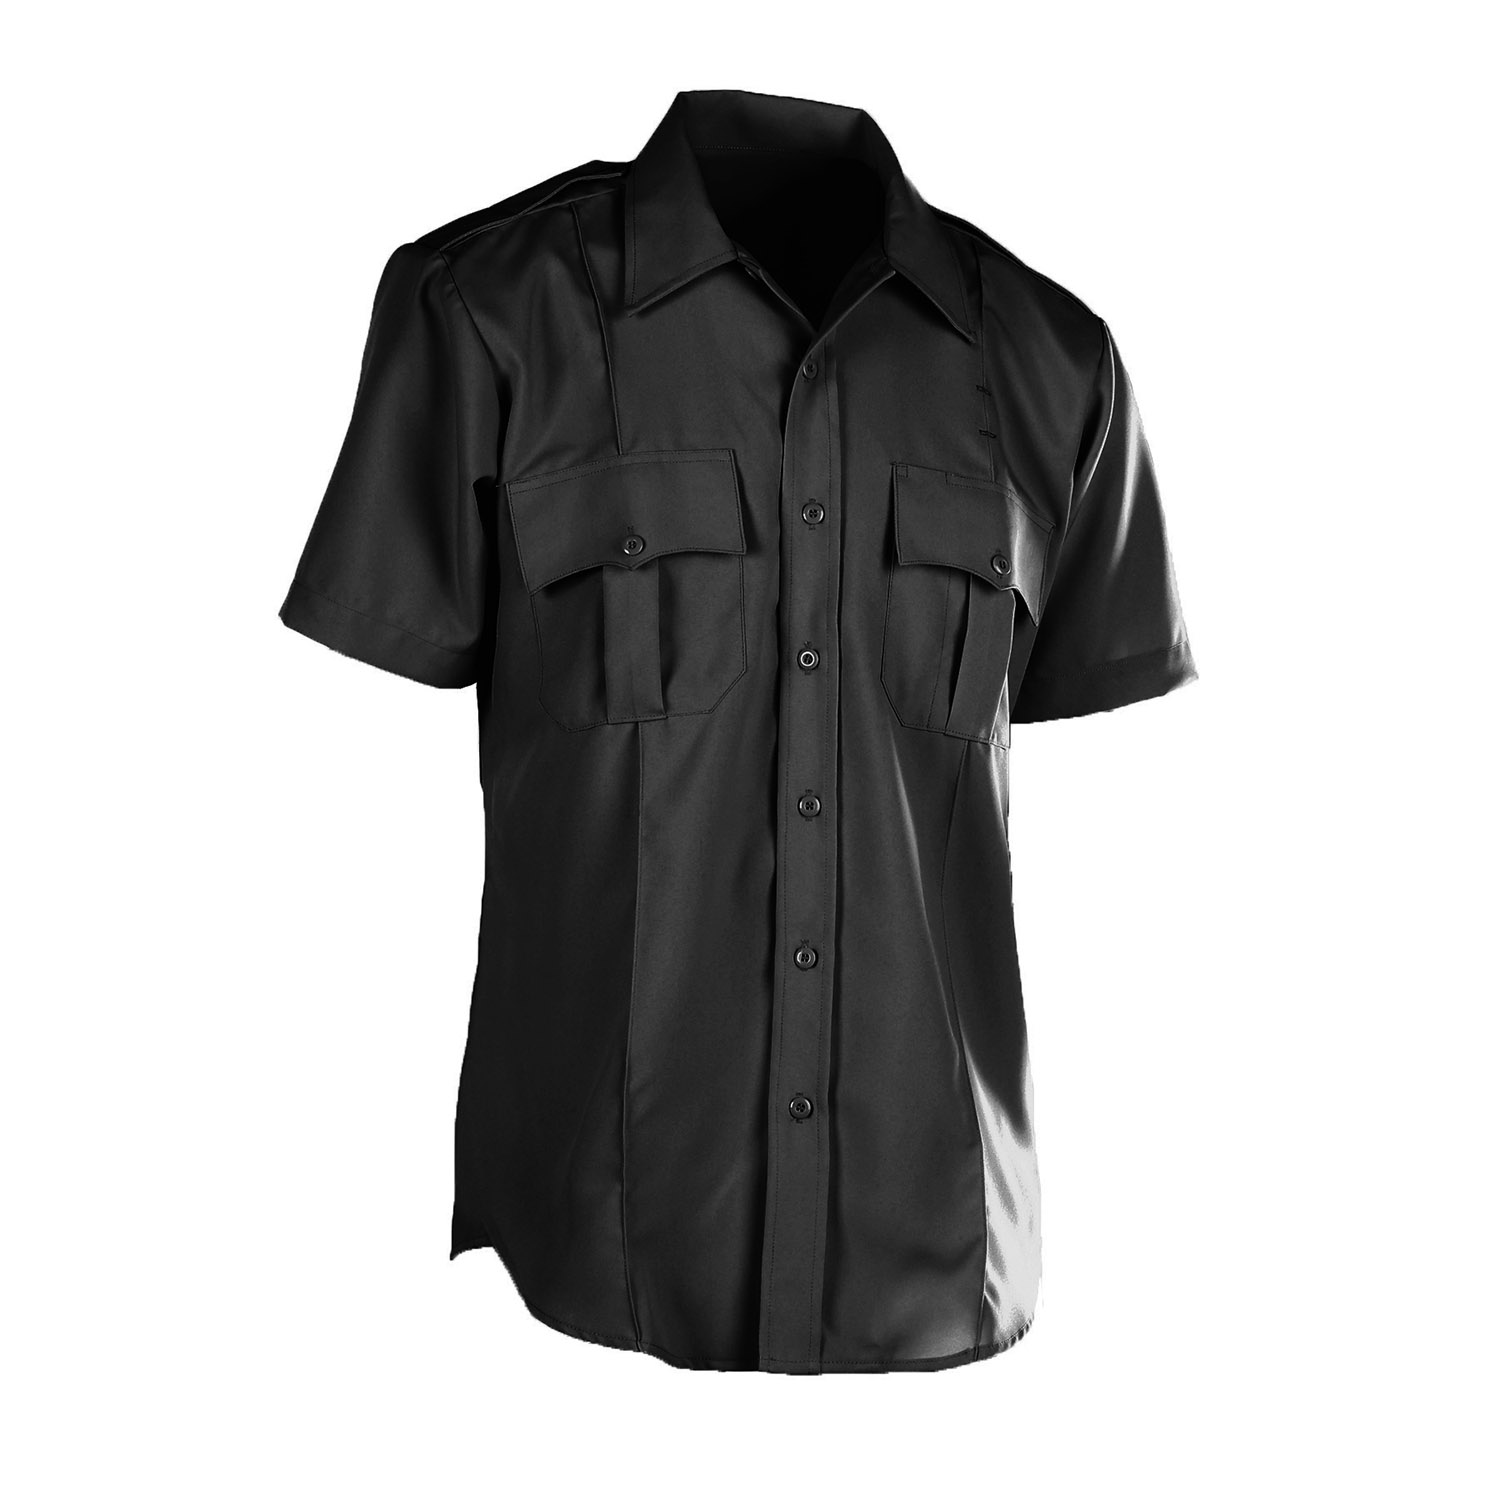 Tact Squad 100%Poly Short Sleeve Shirt